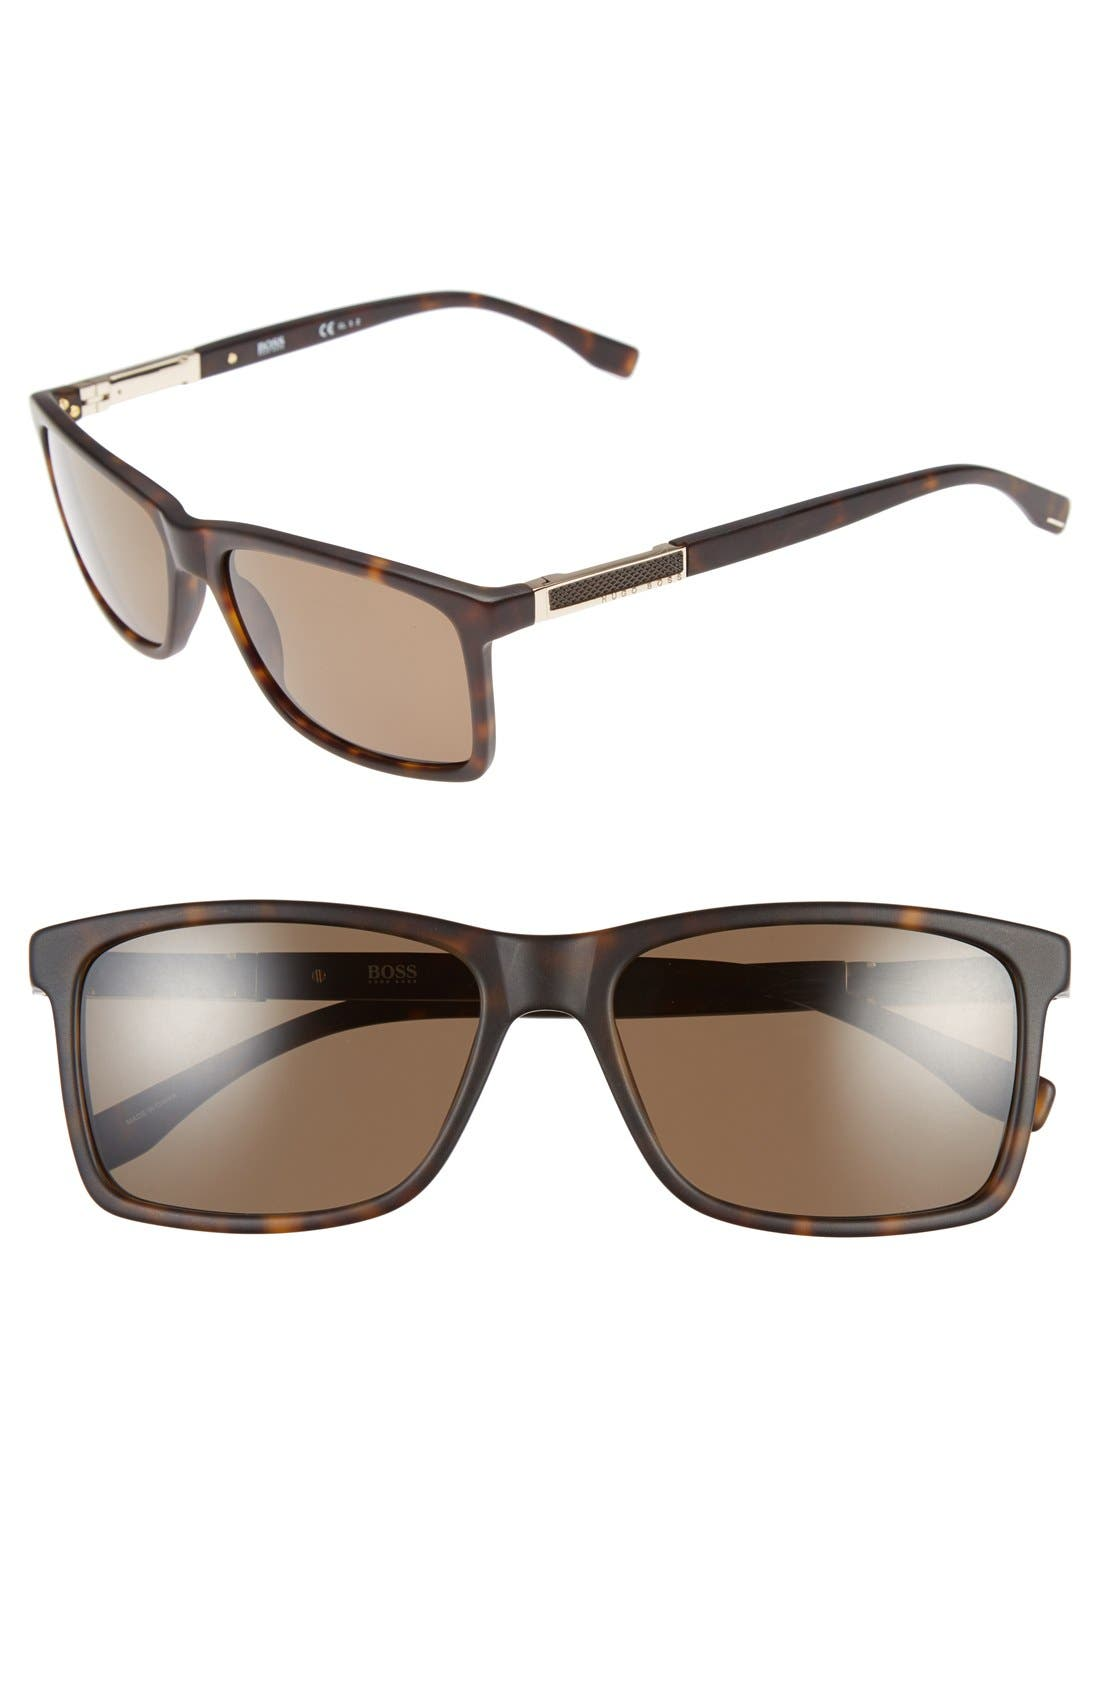 Main Image - BOSS '0704PS' 57mm Polarized Sunglasses